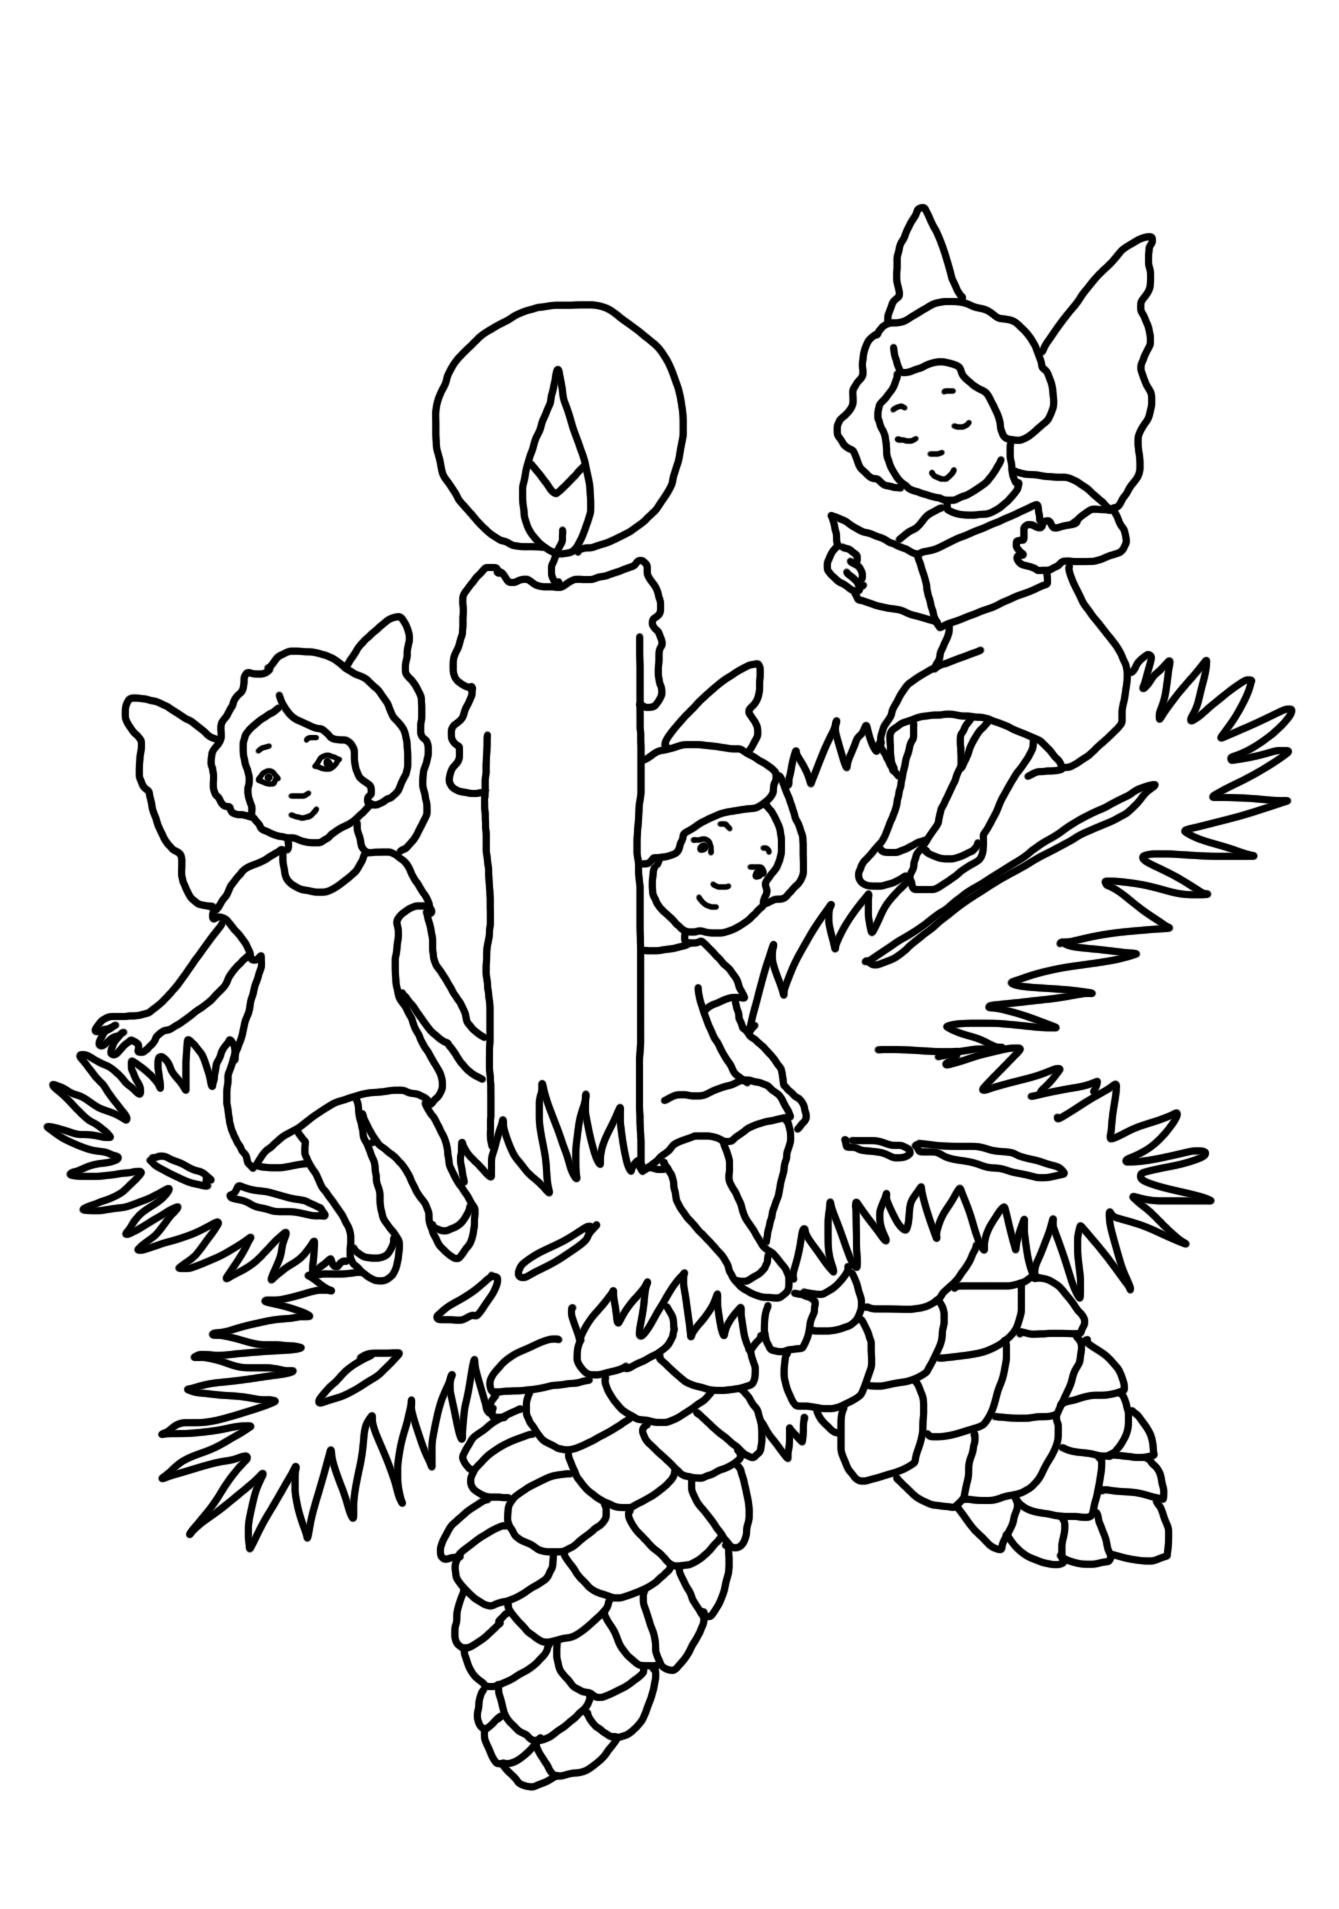 ho iday coloring pages - photo#20